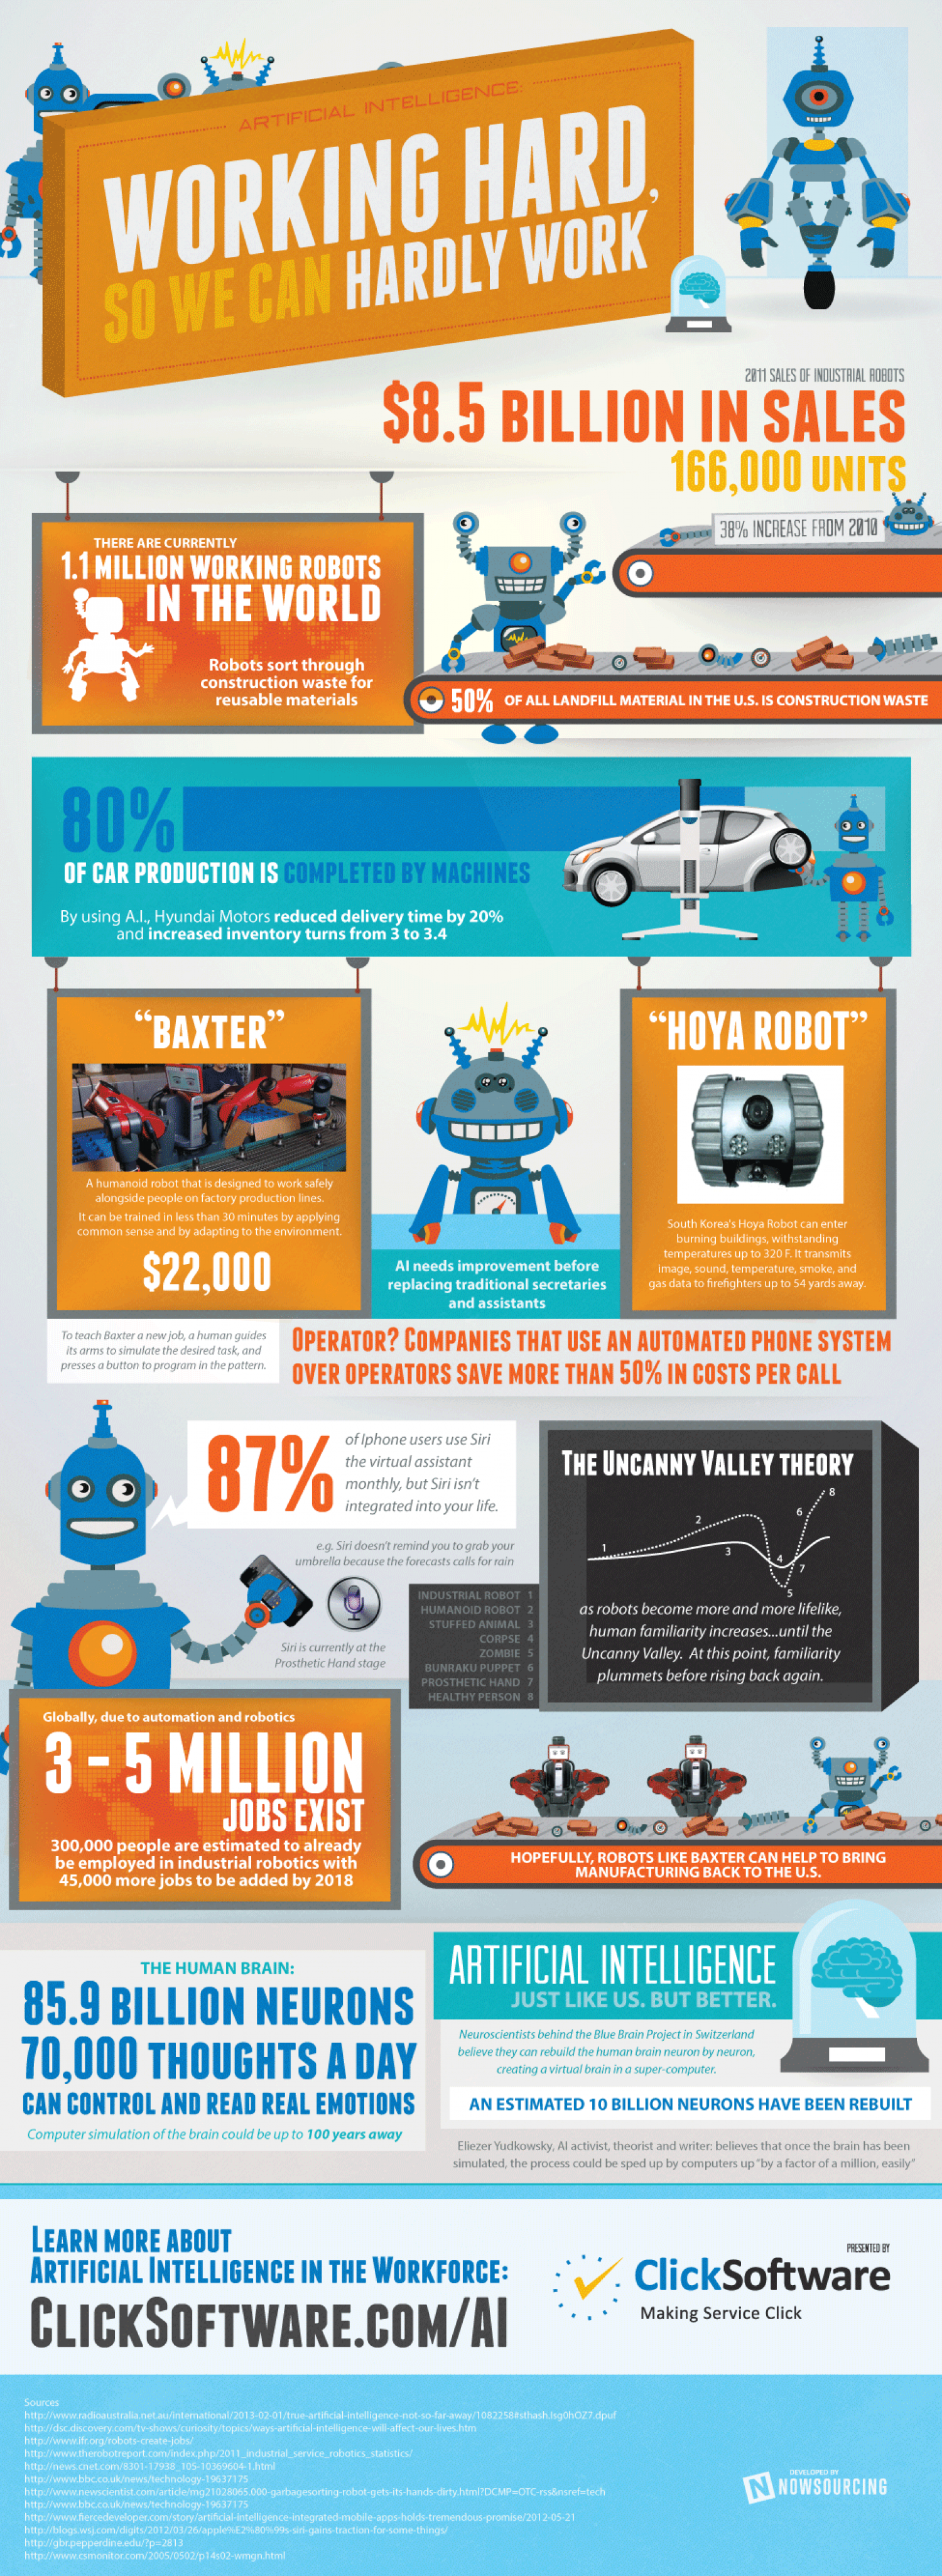 Working Hard, So We Can Hardly Work Infographic